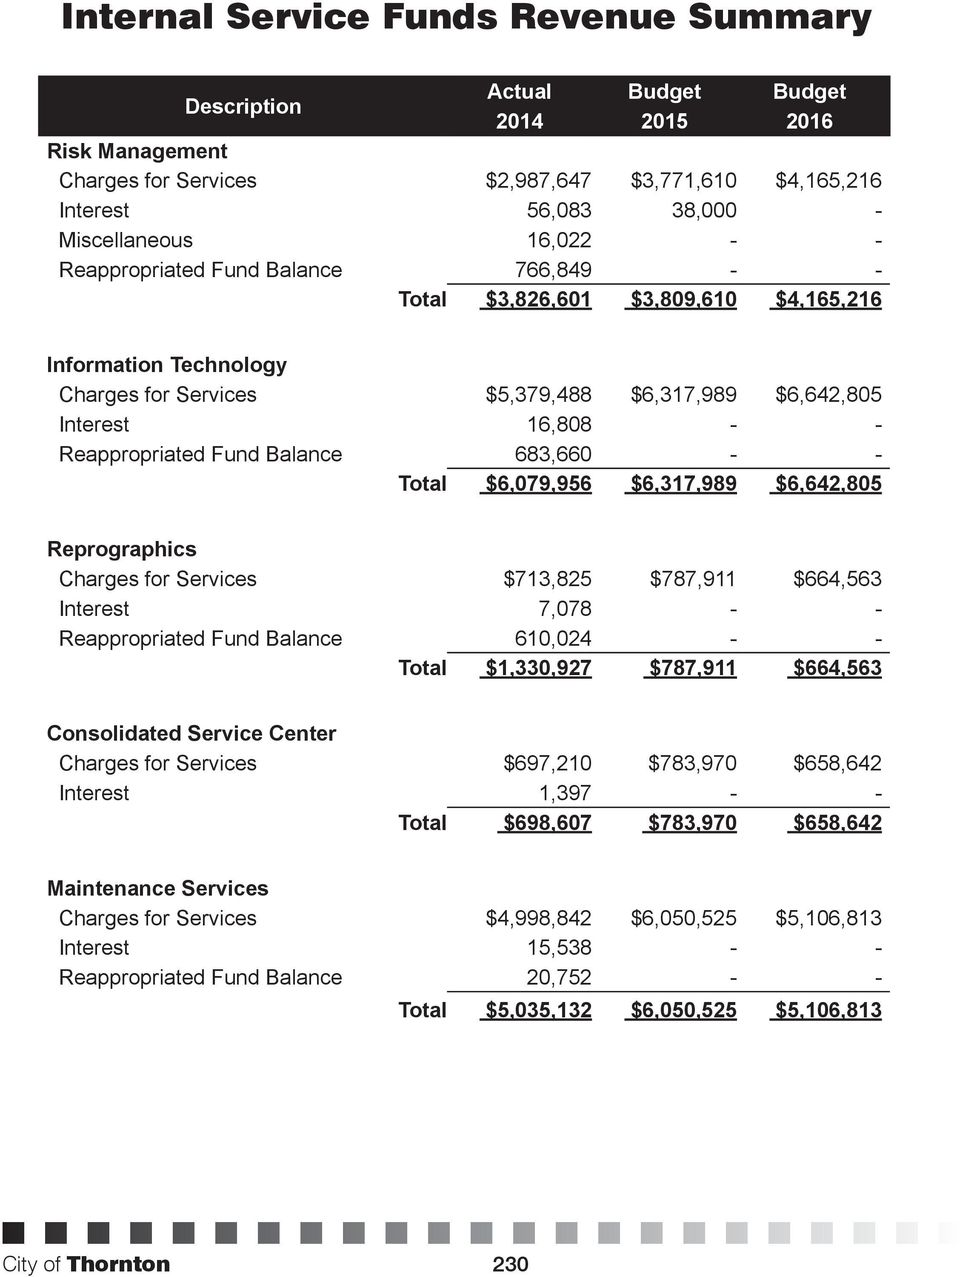 Reappropriated Fund Balance 683,660 - - Total $6,079,956 $6,317,989 $6,642,805 Reprographics Charges for Services $713,825 $787,911 $664,563 Interest 7,078 - - Reappropriated Fund Balance 610,024 - -